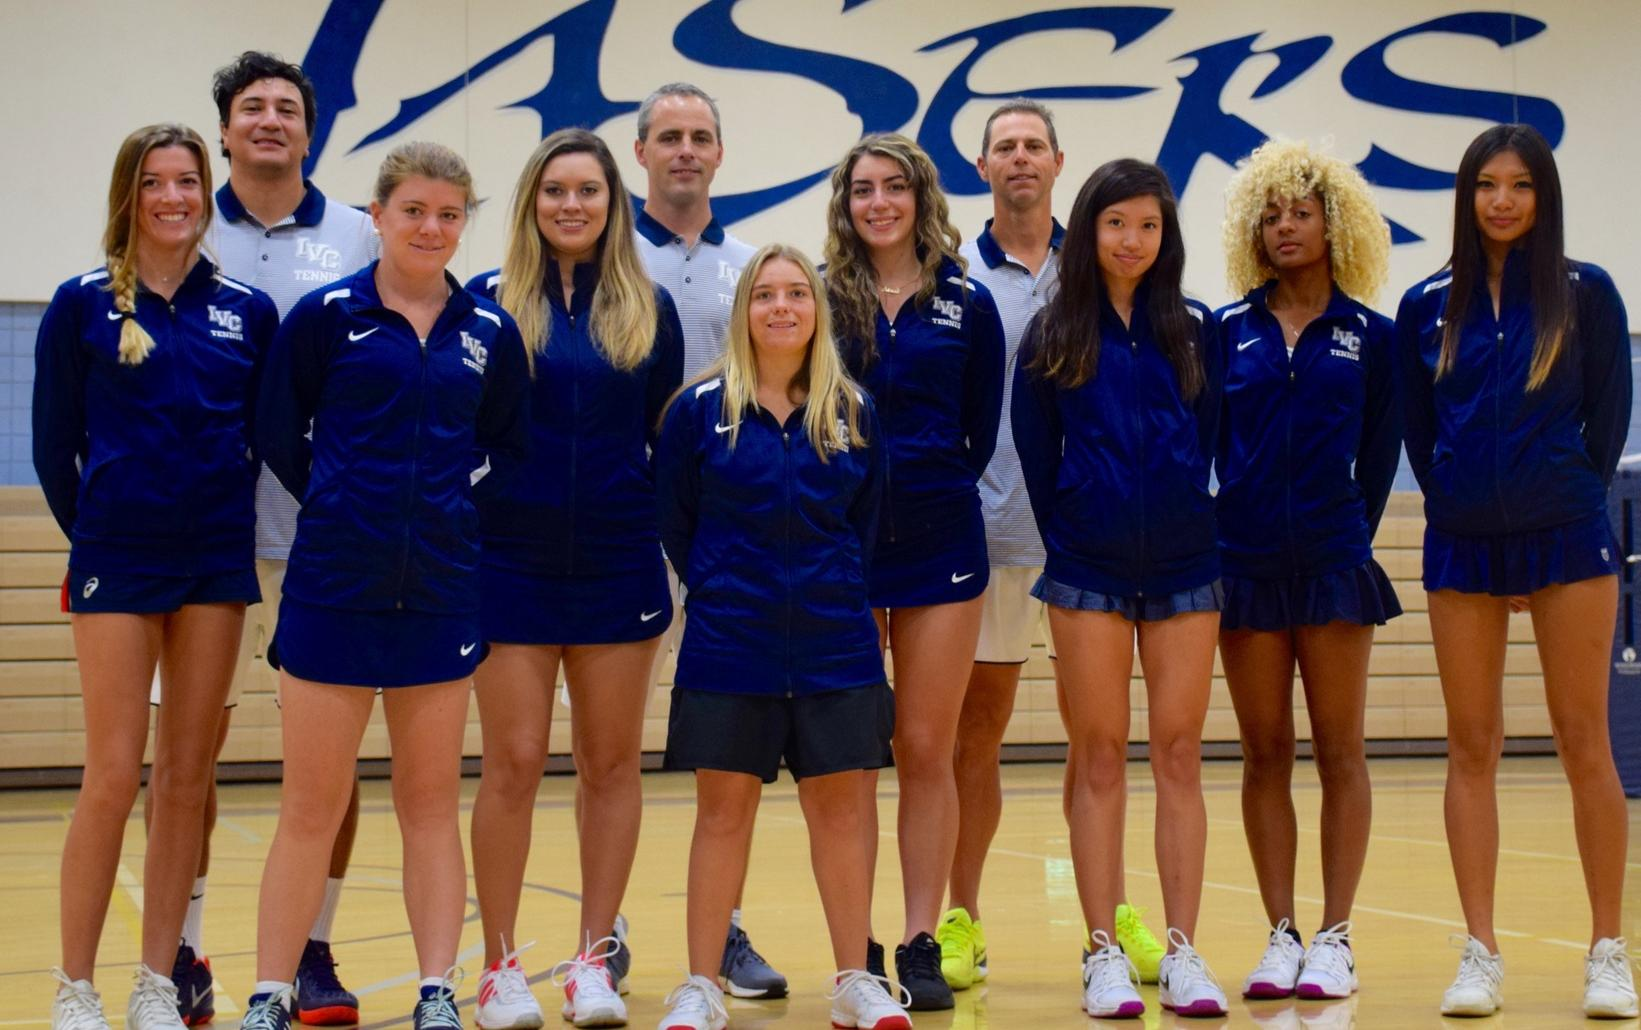 Women's tennis team tops defending conference champion